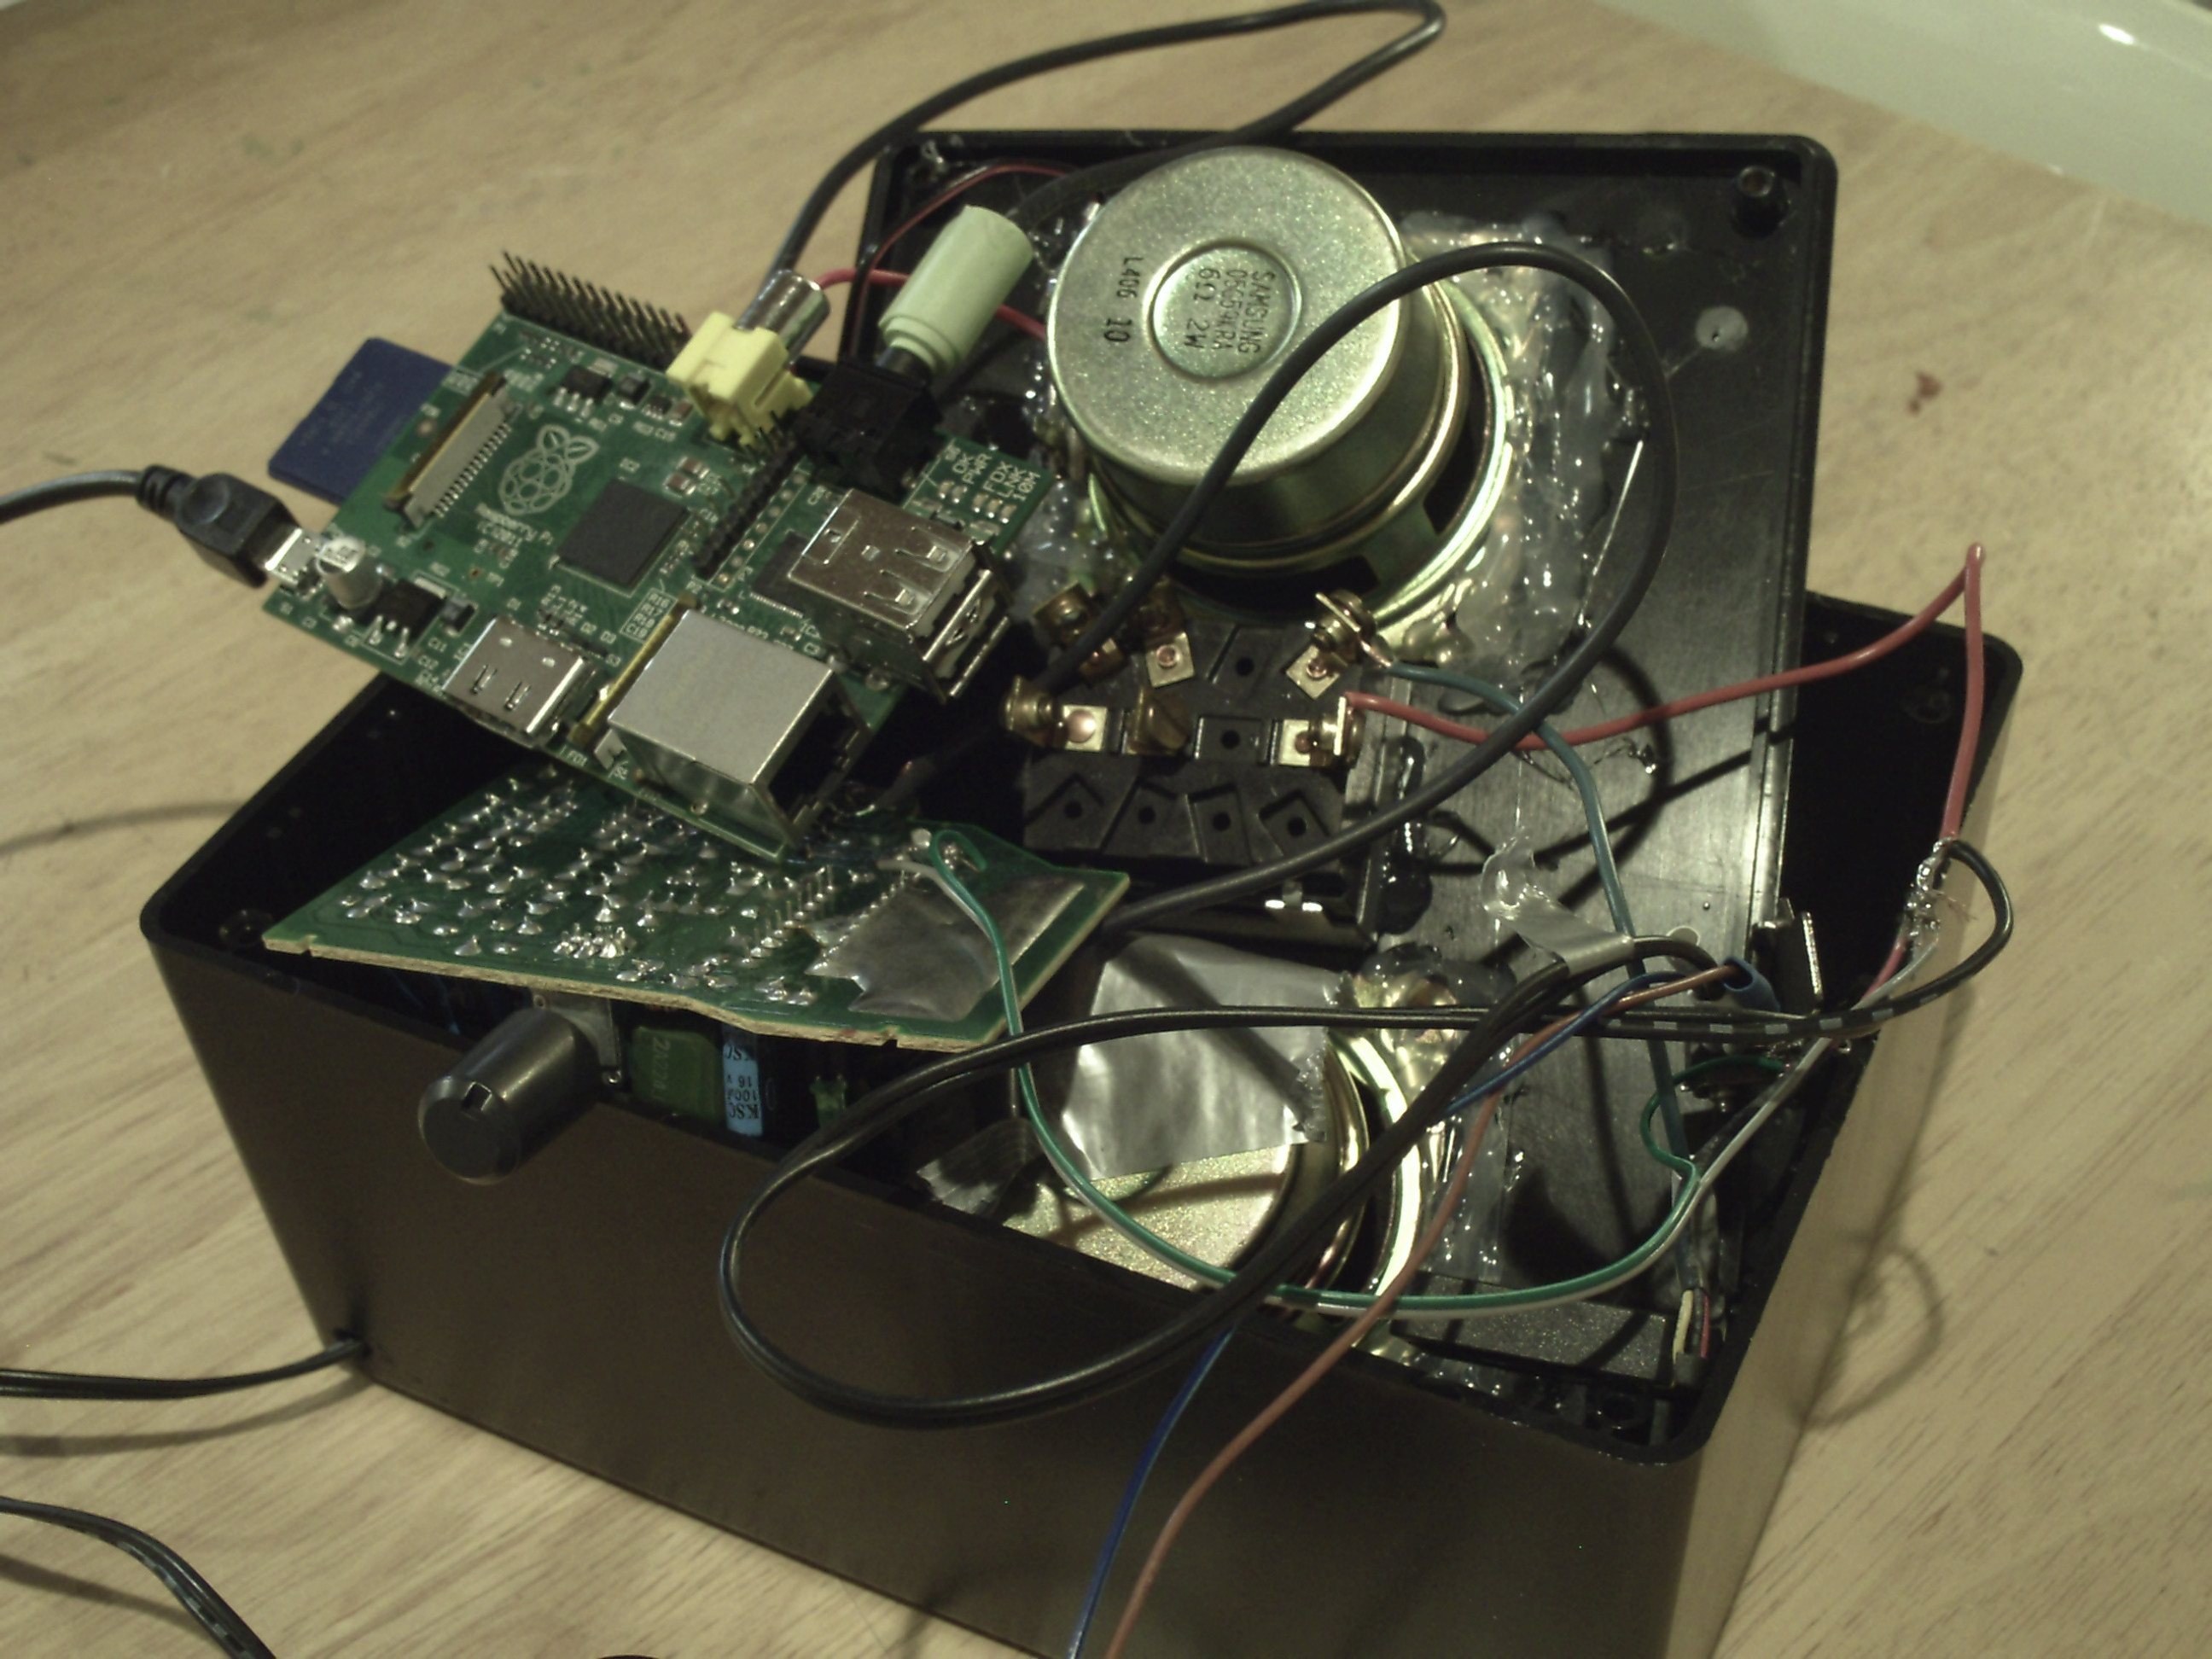 Picture of Hardware - Part 4